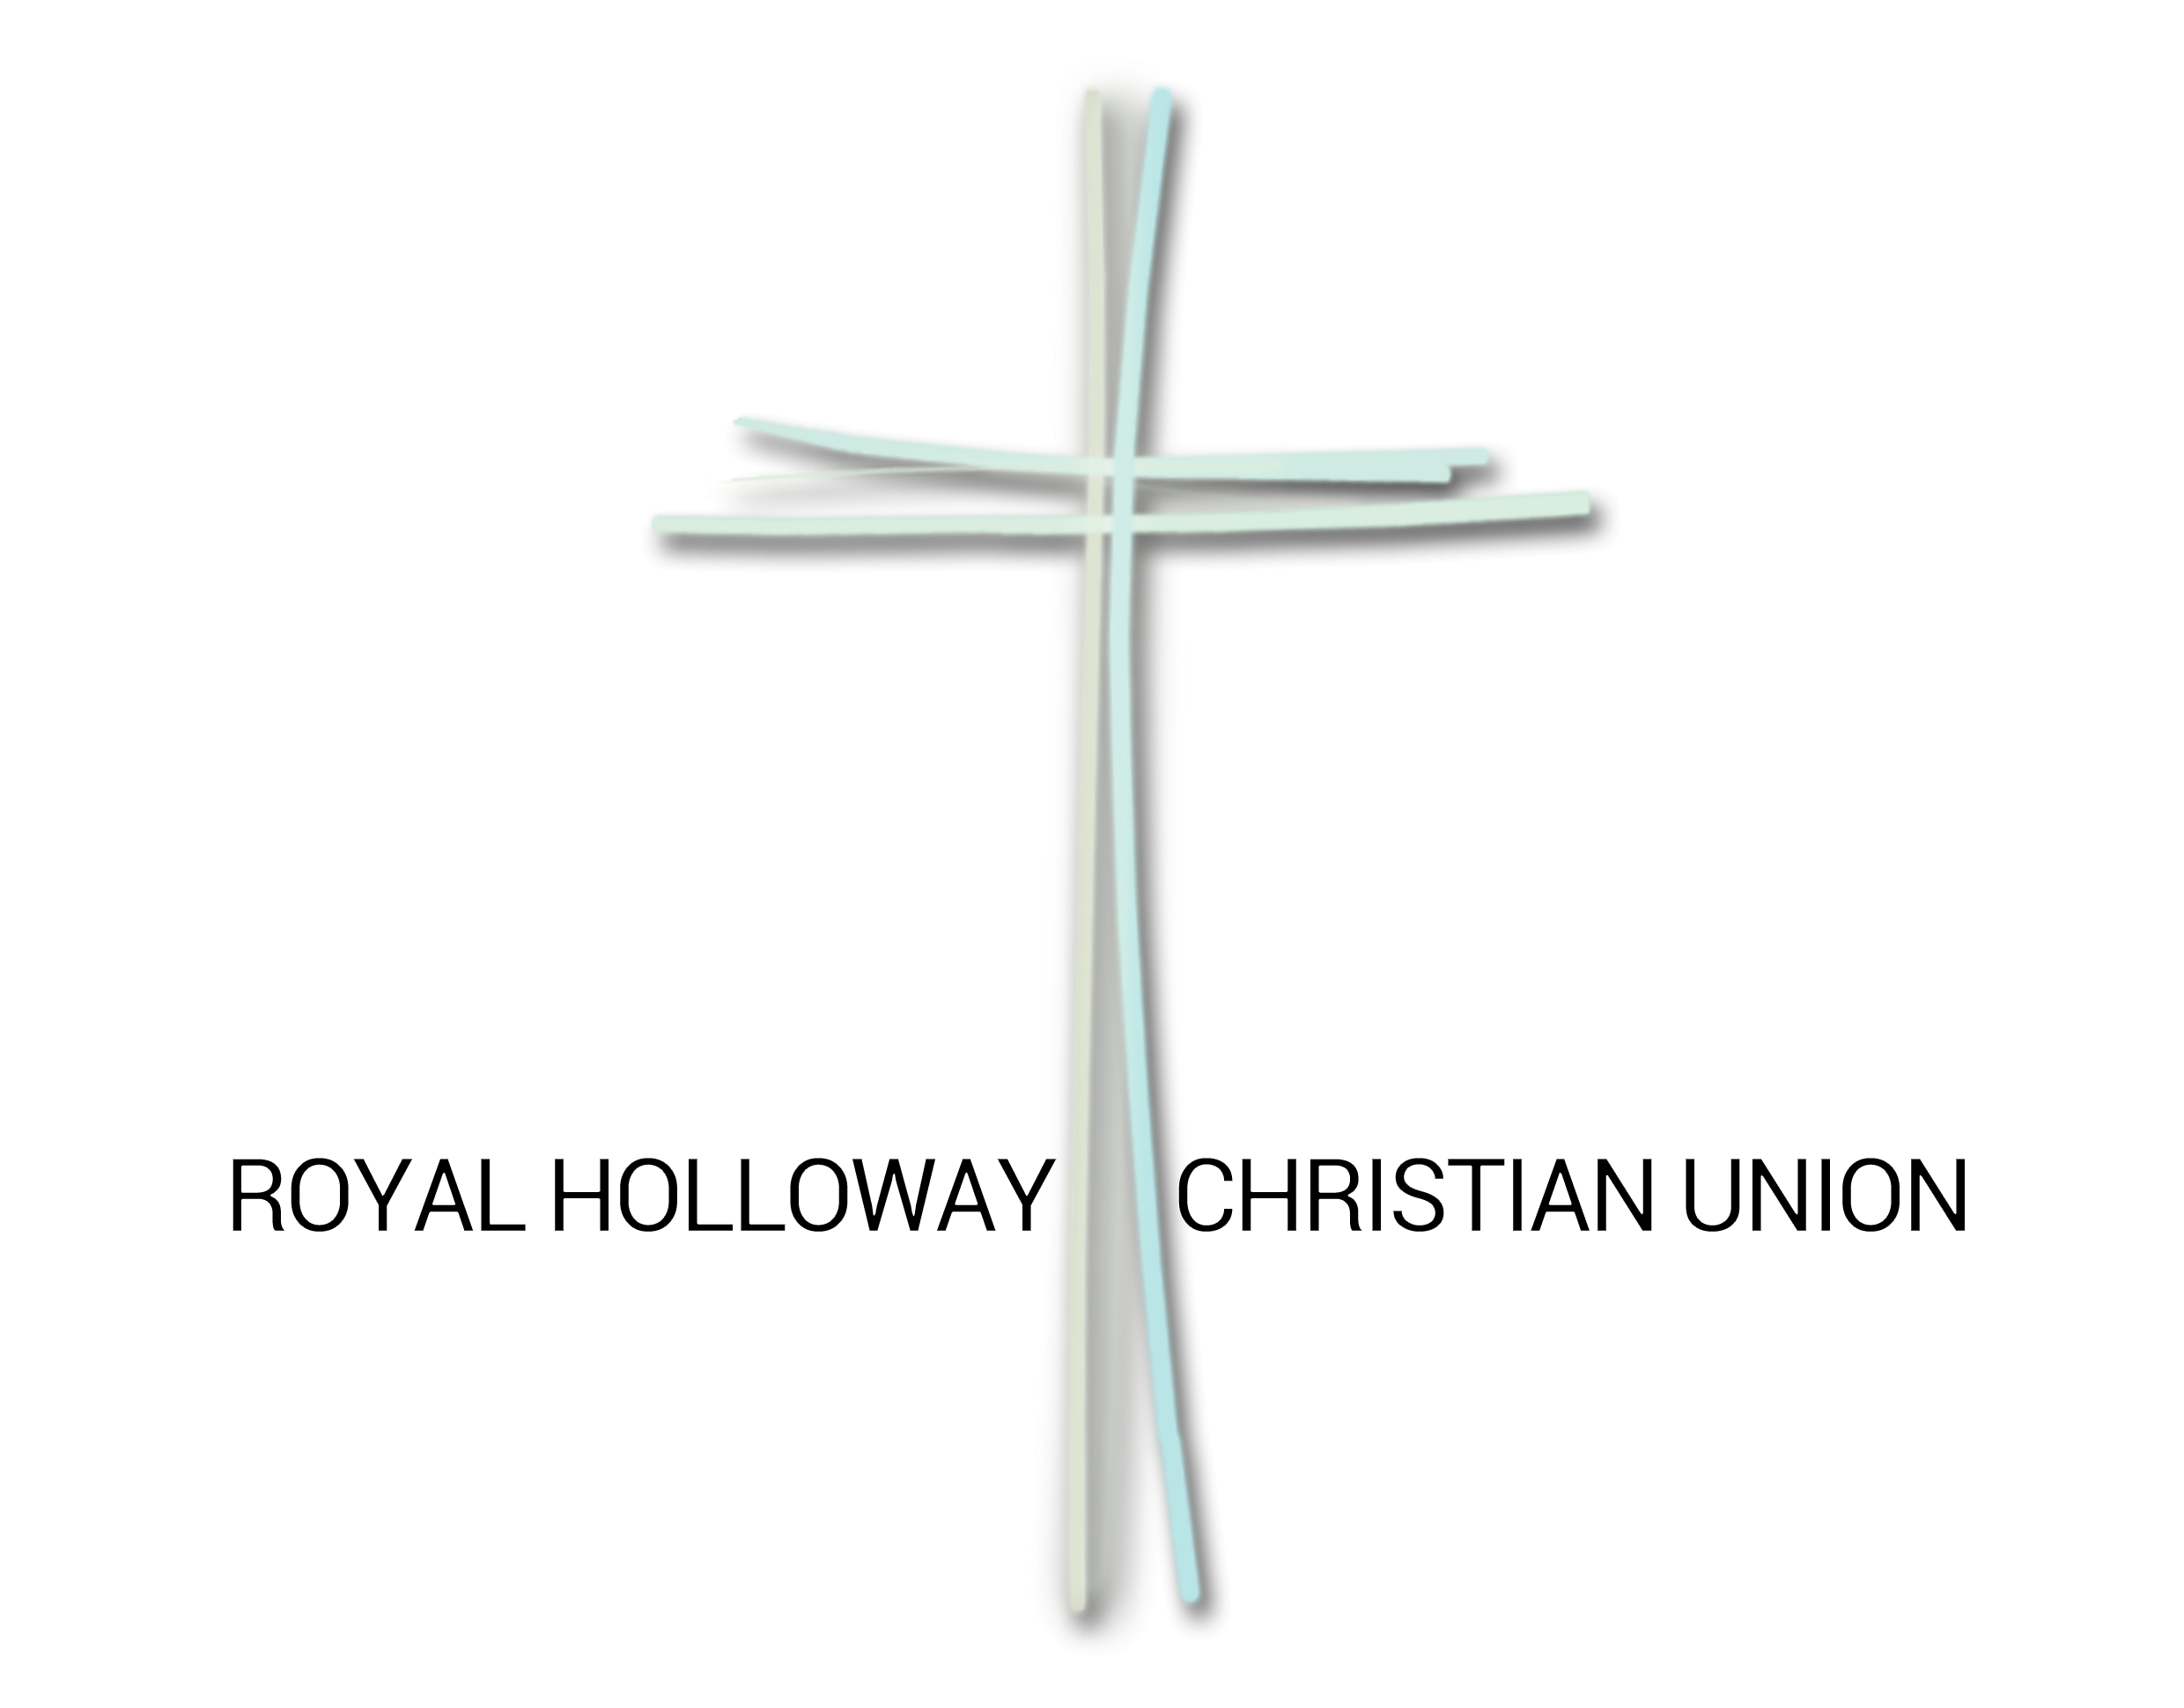 Royal Holloway Christian Union